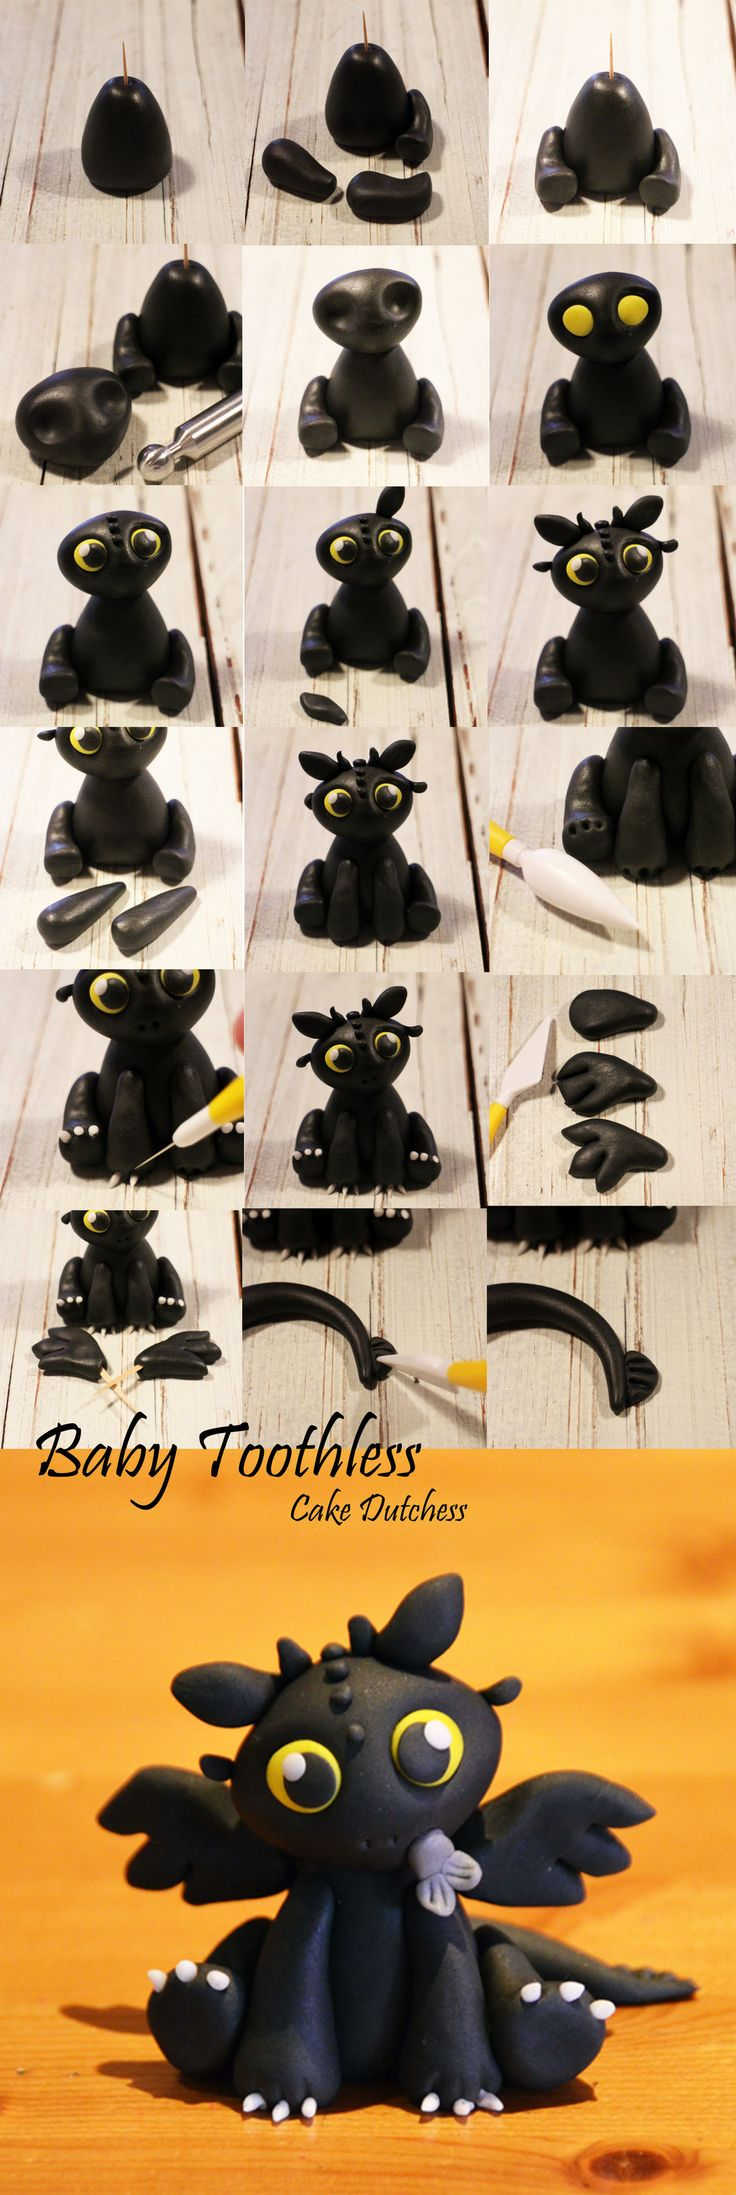 "Baby Toothless Tutorial by Naera the Cake Dutchess. ""How To Train Your Dragon"" i am going to try to make this out of clay"